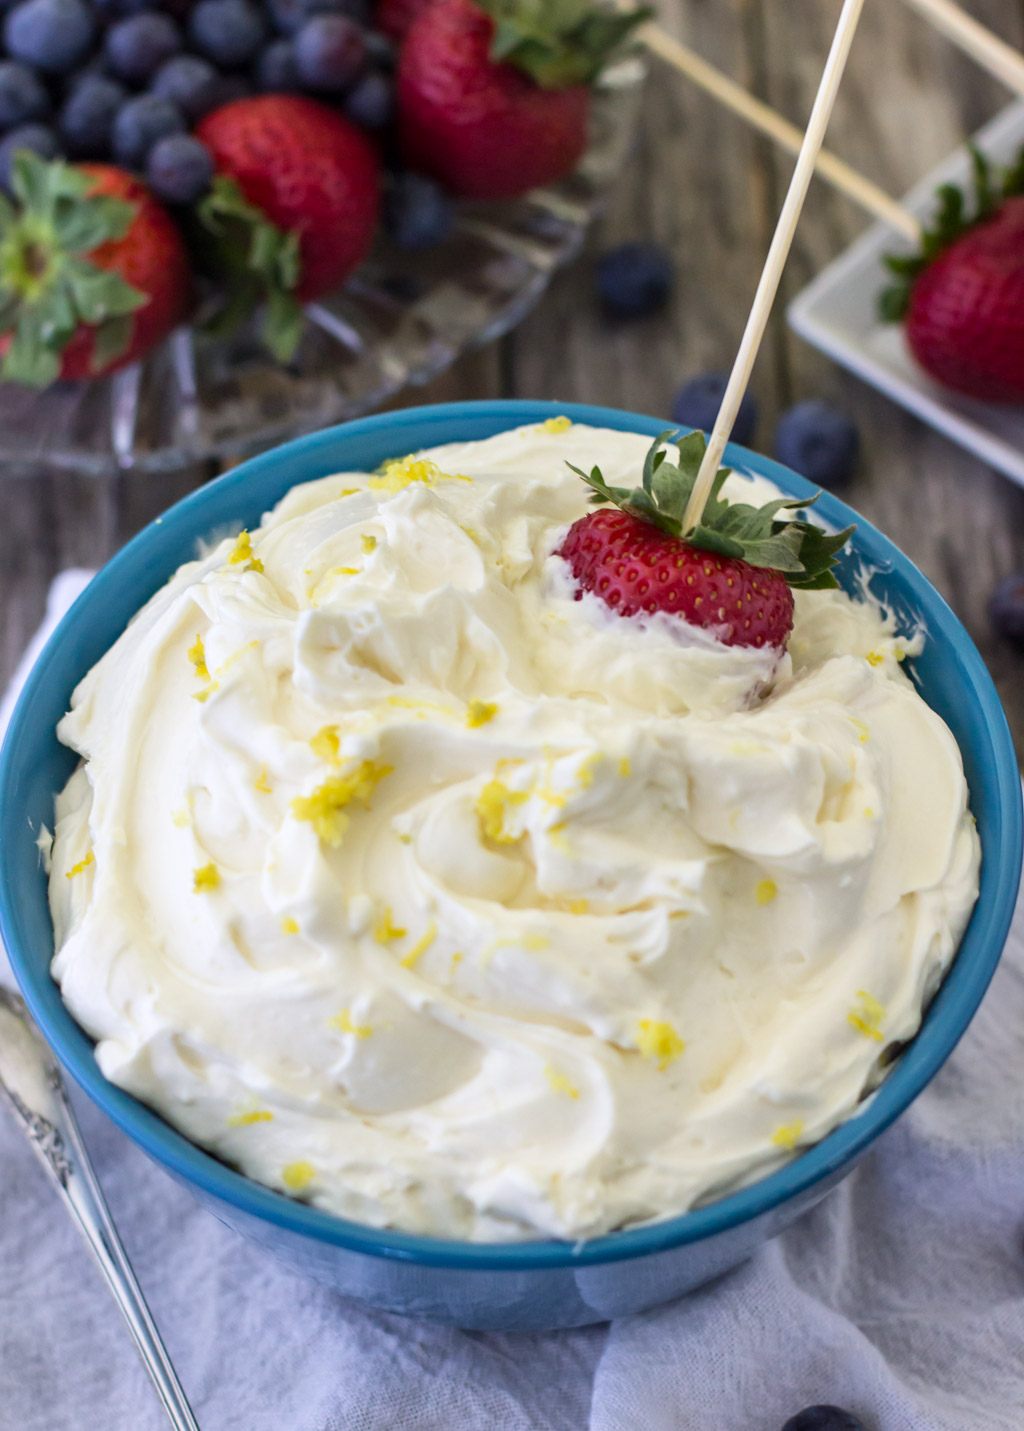 A little sweet and a little tart, this lemon cheesecake dip is the perfect accessory to your next party, cookout, or potluck!